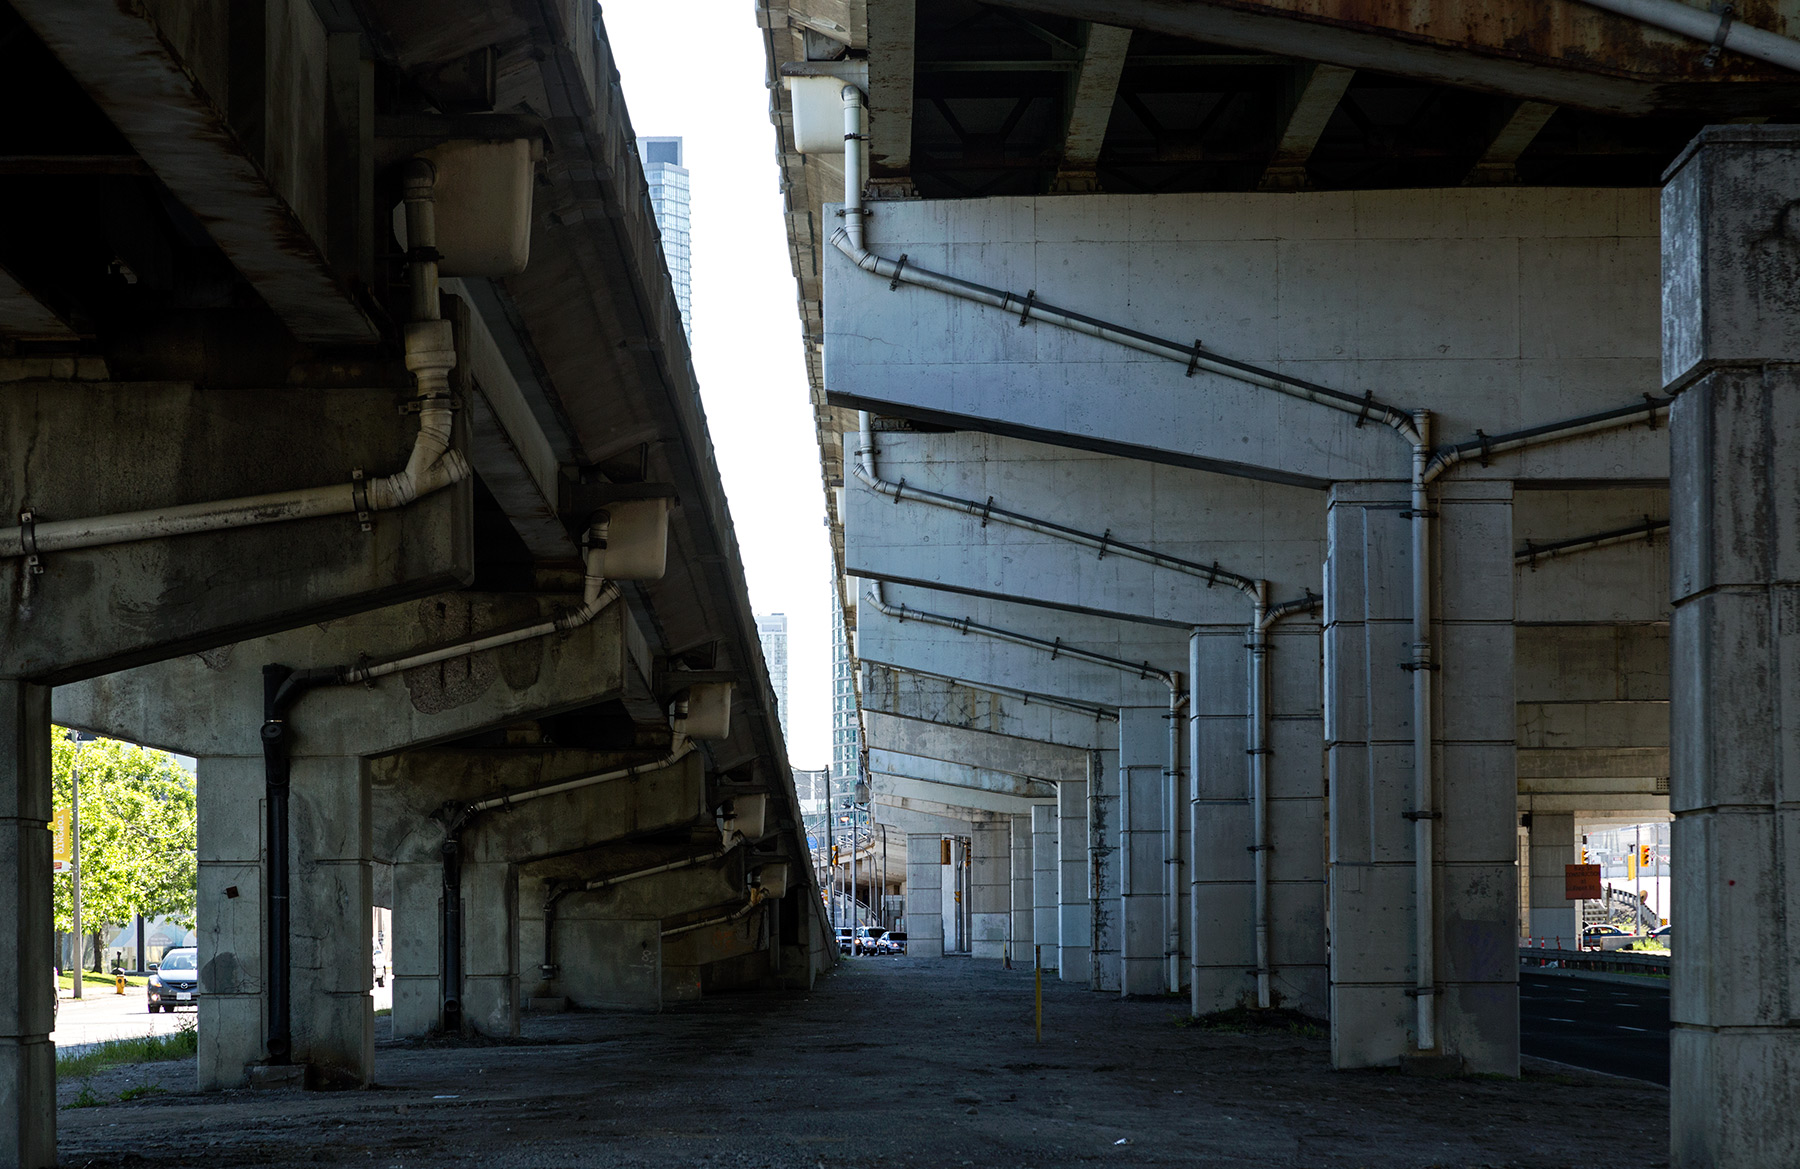 20150603. The Gardiner East Expressway is a cathedral of rust an